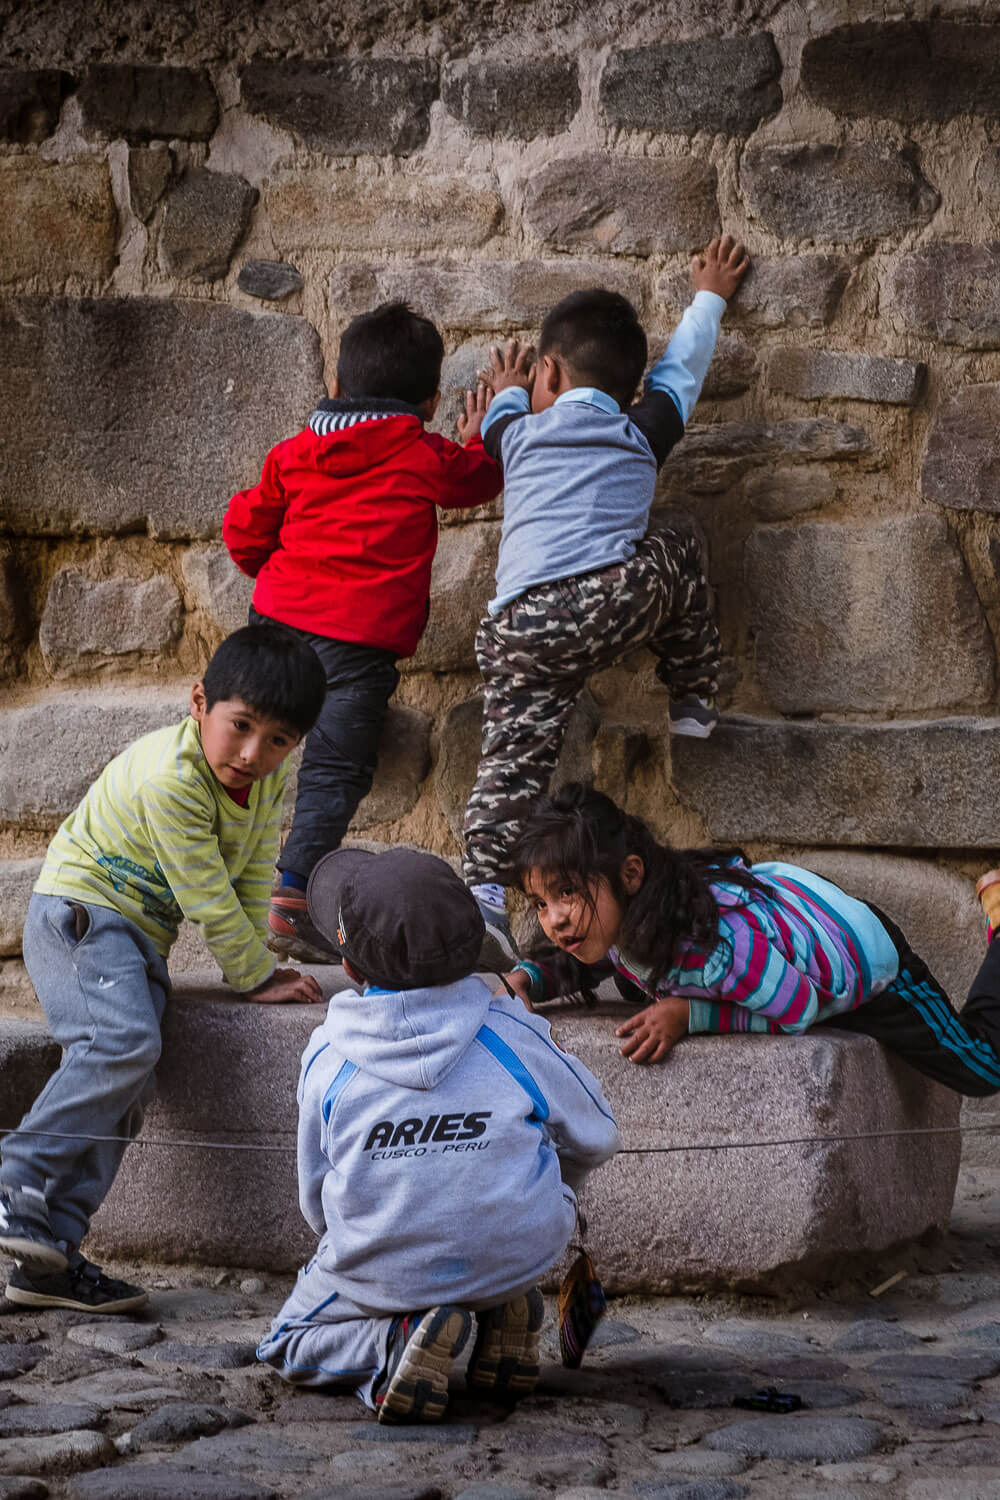 """Kids playing in The Sacred Valley, Peru. Travel photography and guide by © Natasha Lequepeys for """"And Then I Met Yoko"""". #travelguide #photoblog #fujifilm #machupicchu #sacredvalleyitinerary"""